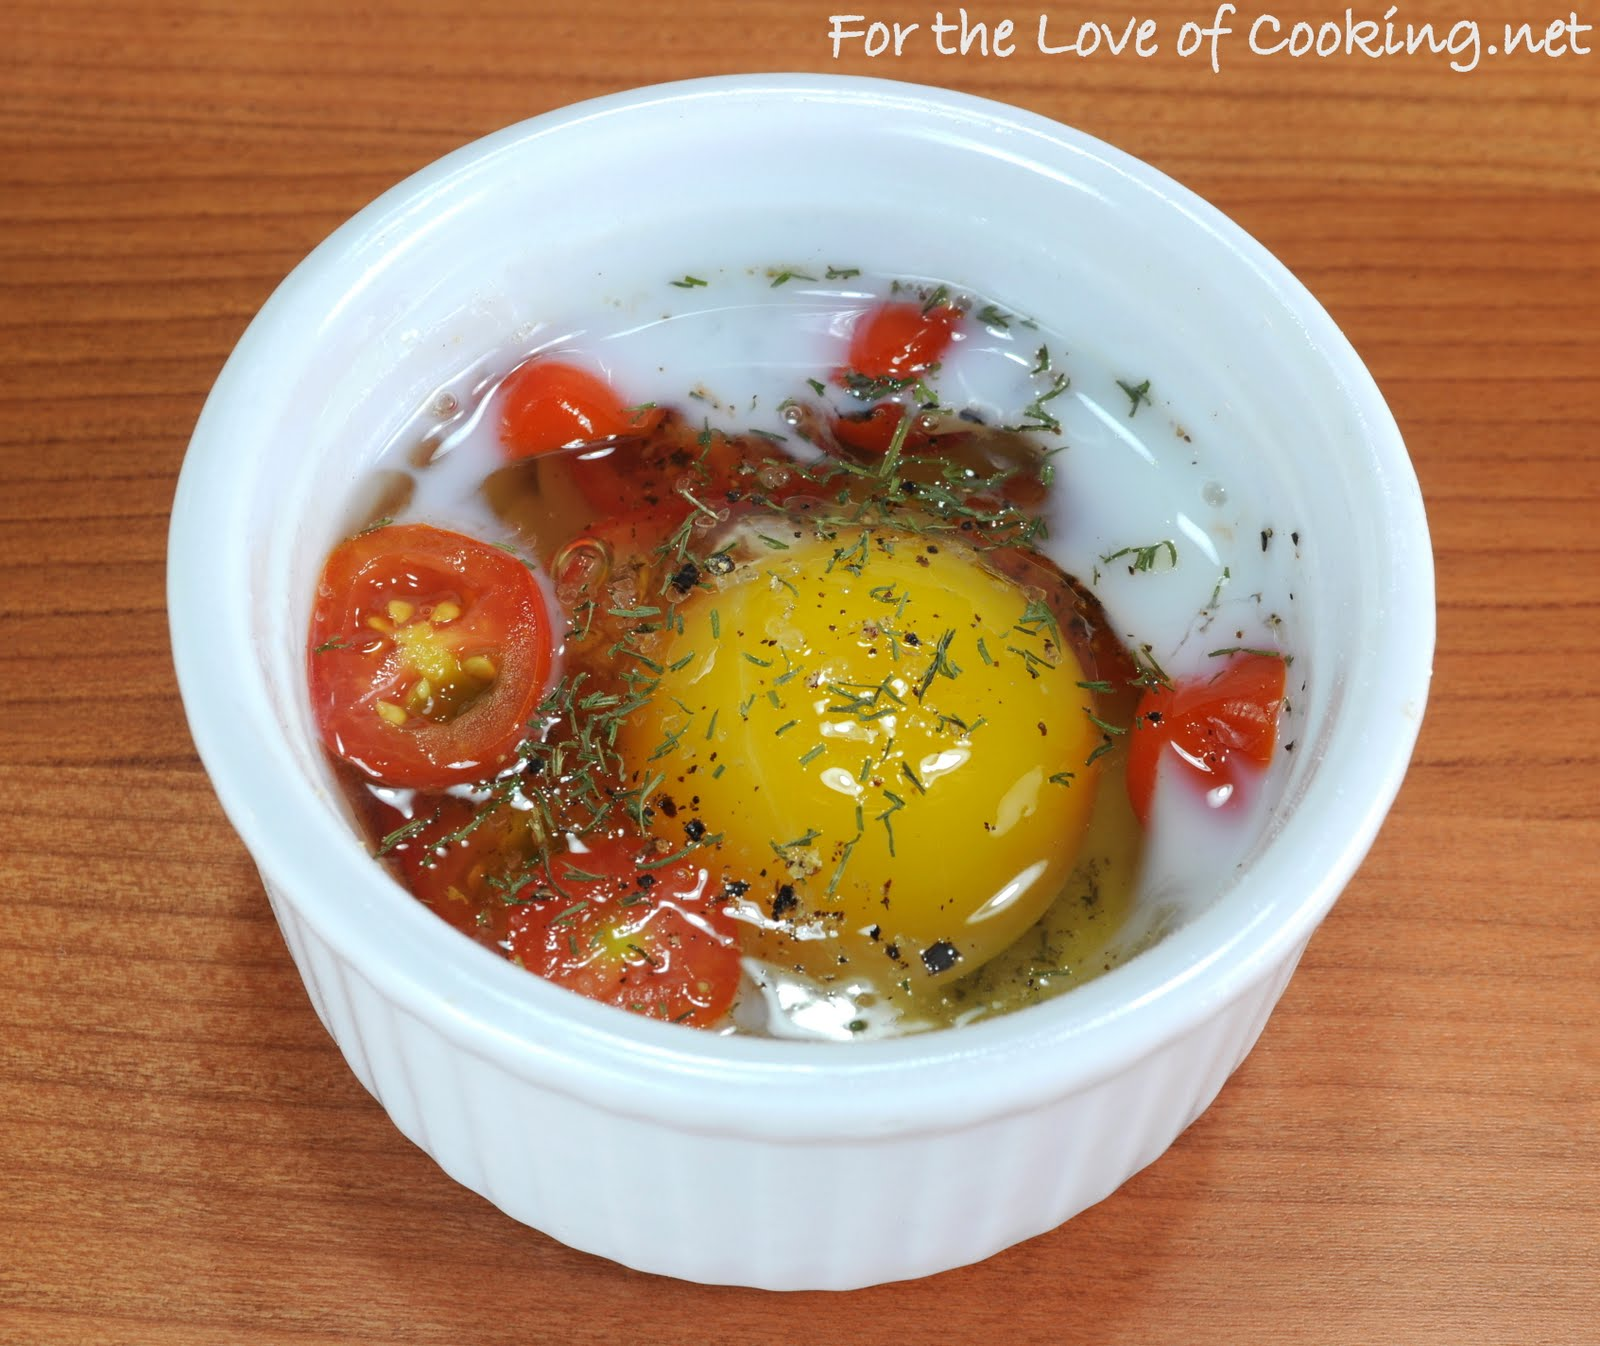 Baked Egg with Tomato and Dill | For the Love of Cooking